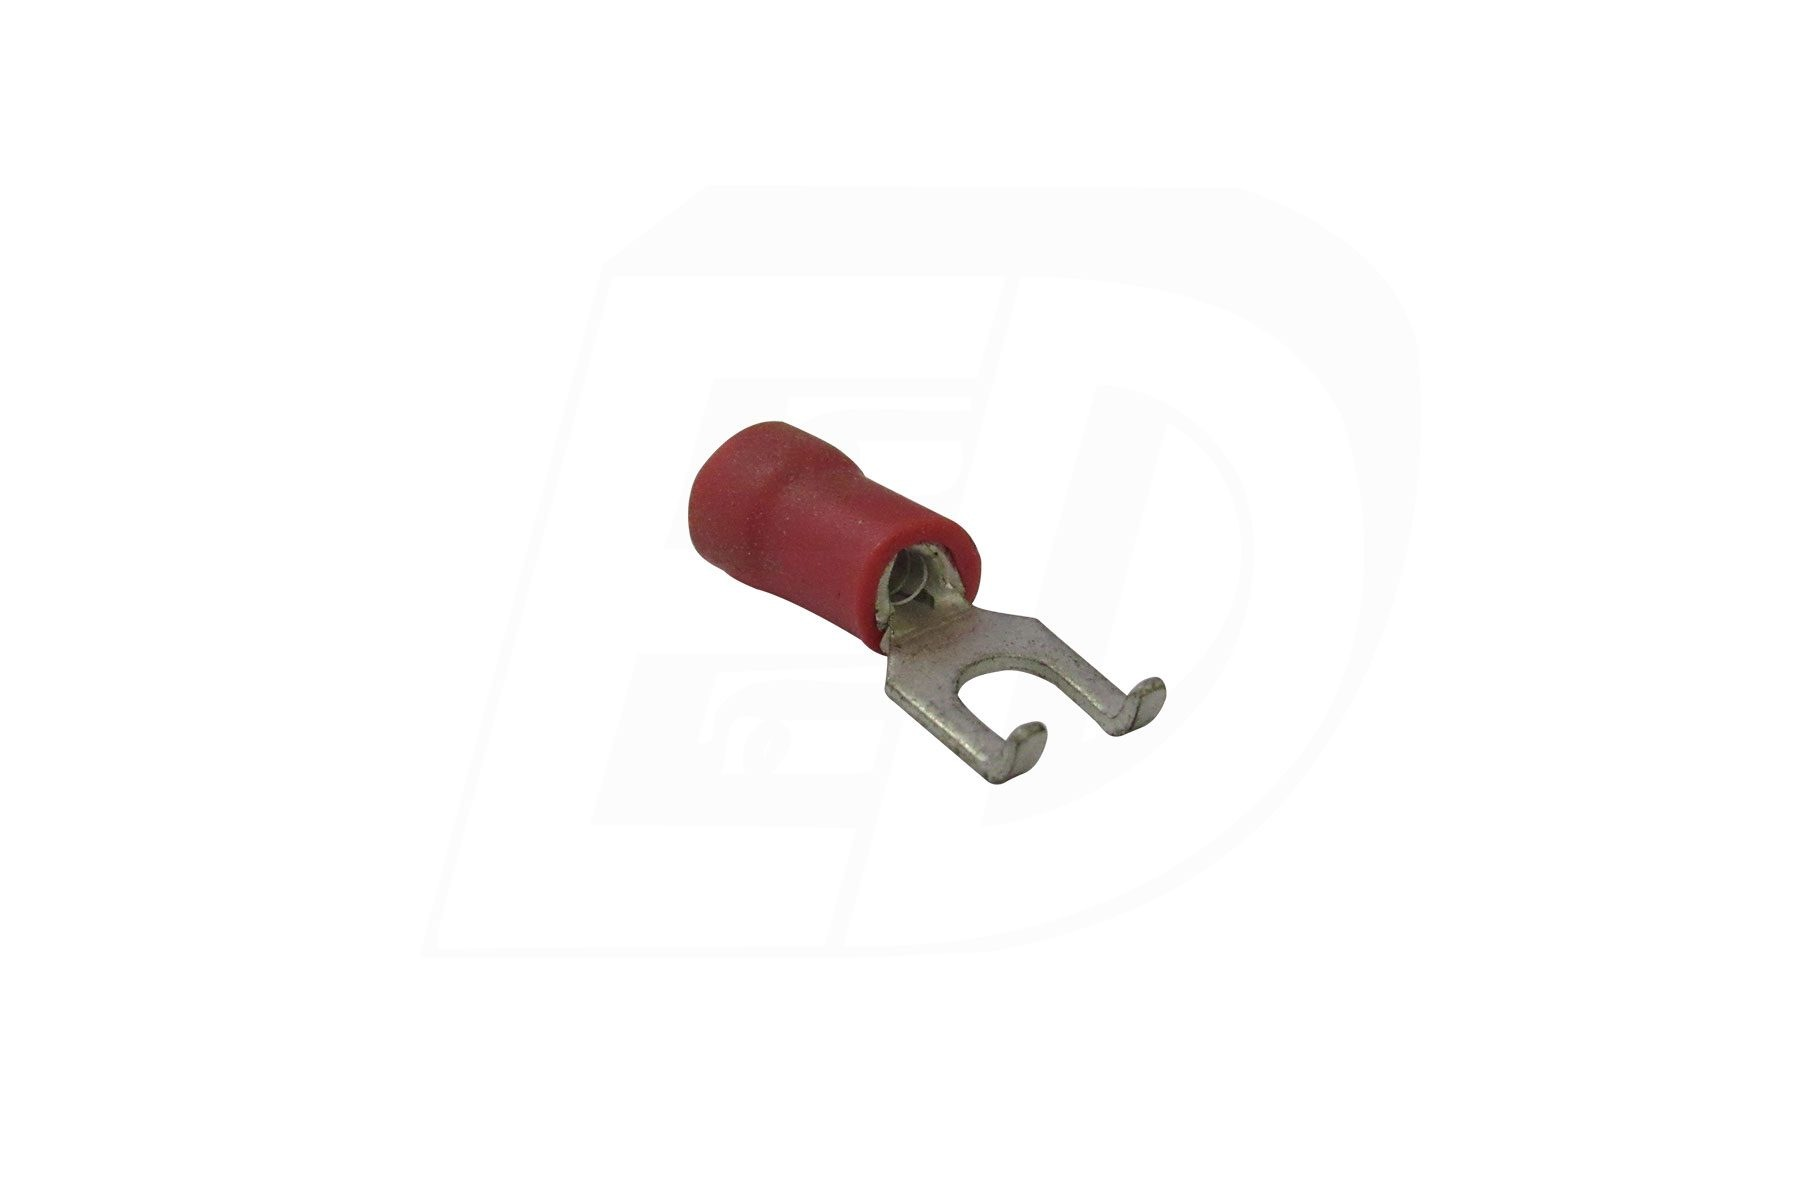 Vinyl Insulated Flanged Spade Terminal 22 - 16 AWG